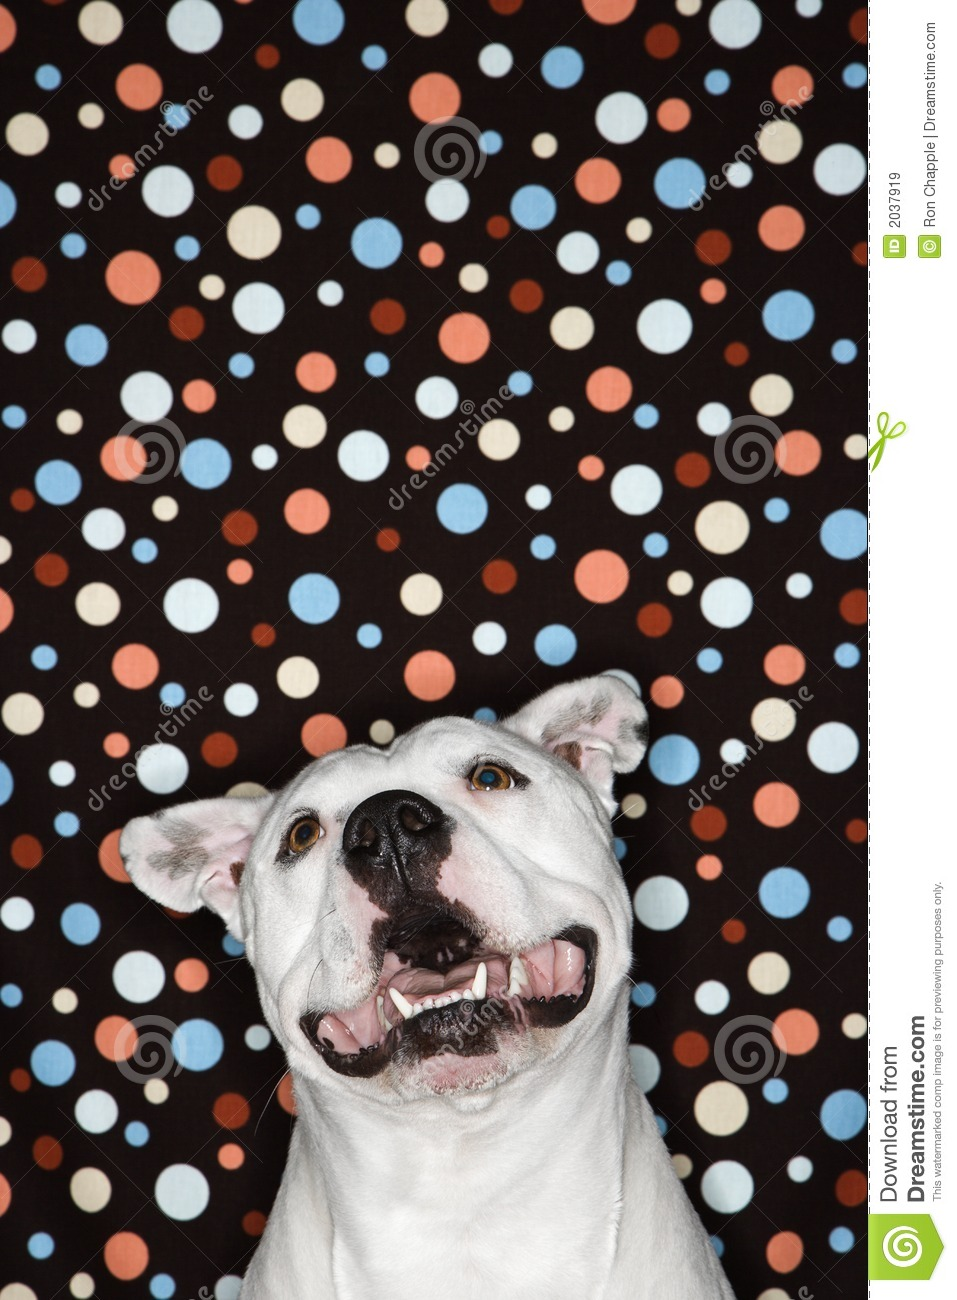 White dog against polka dot background.